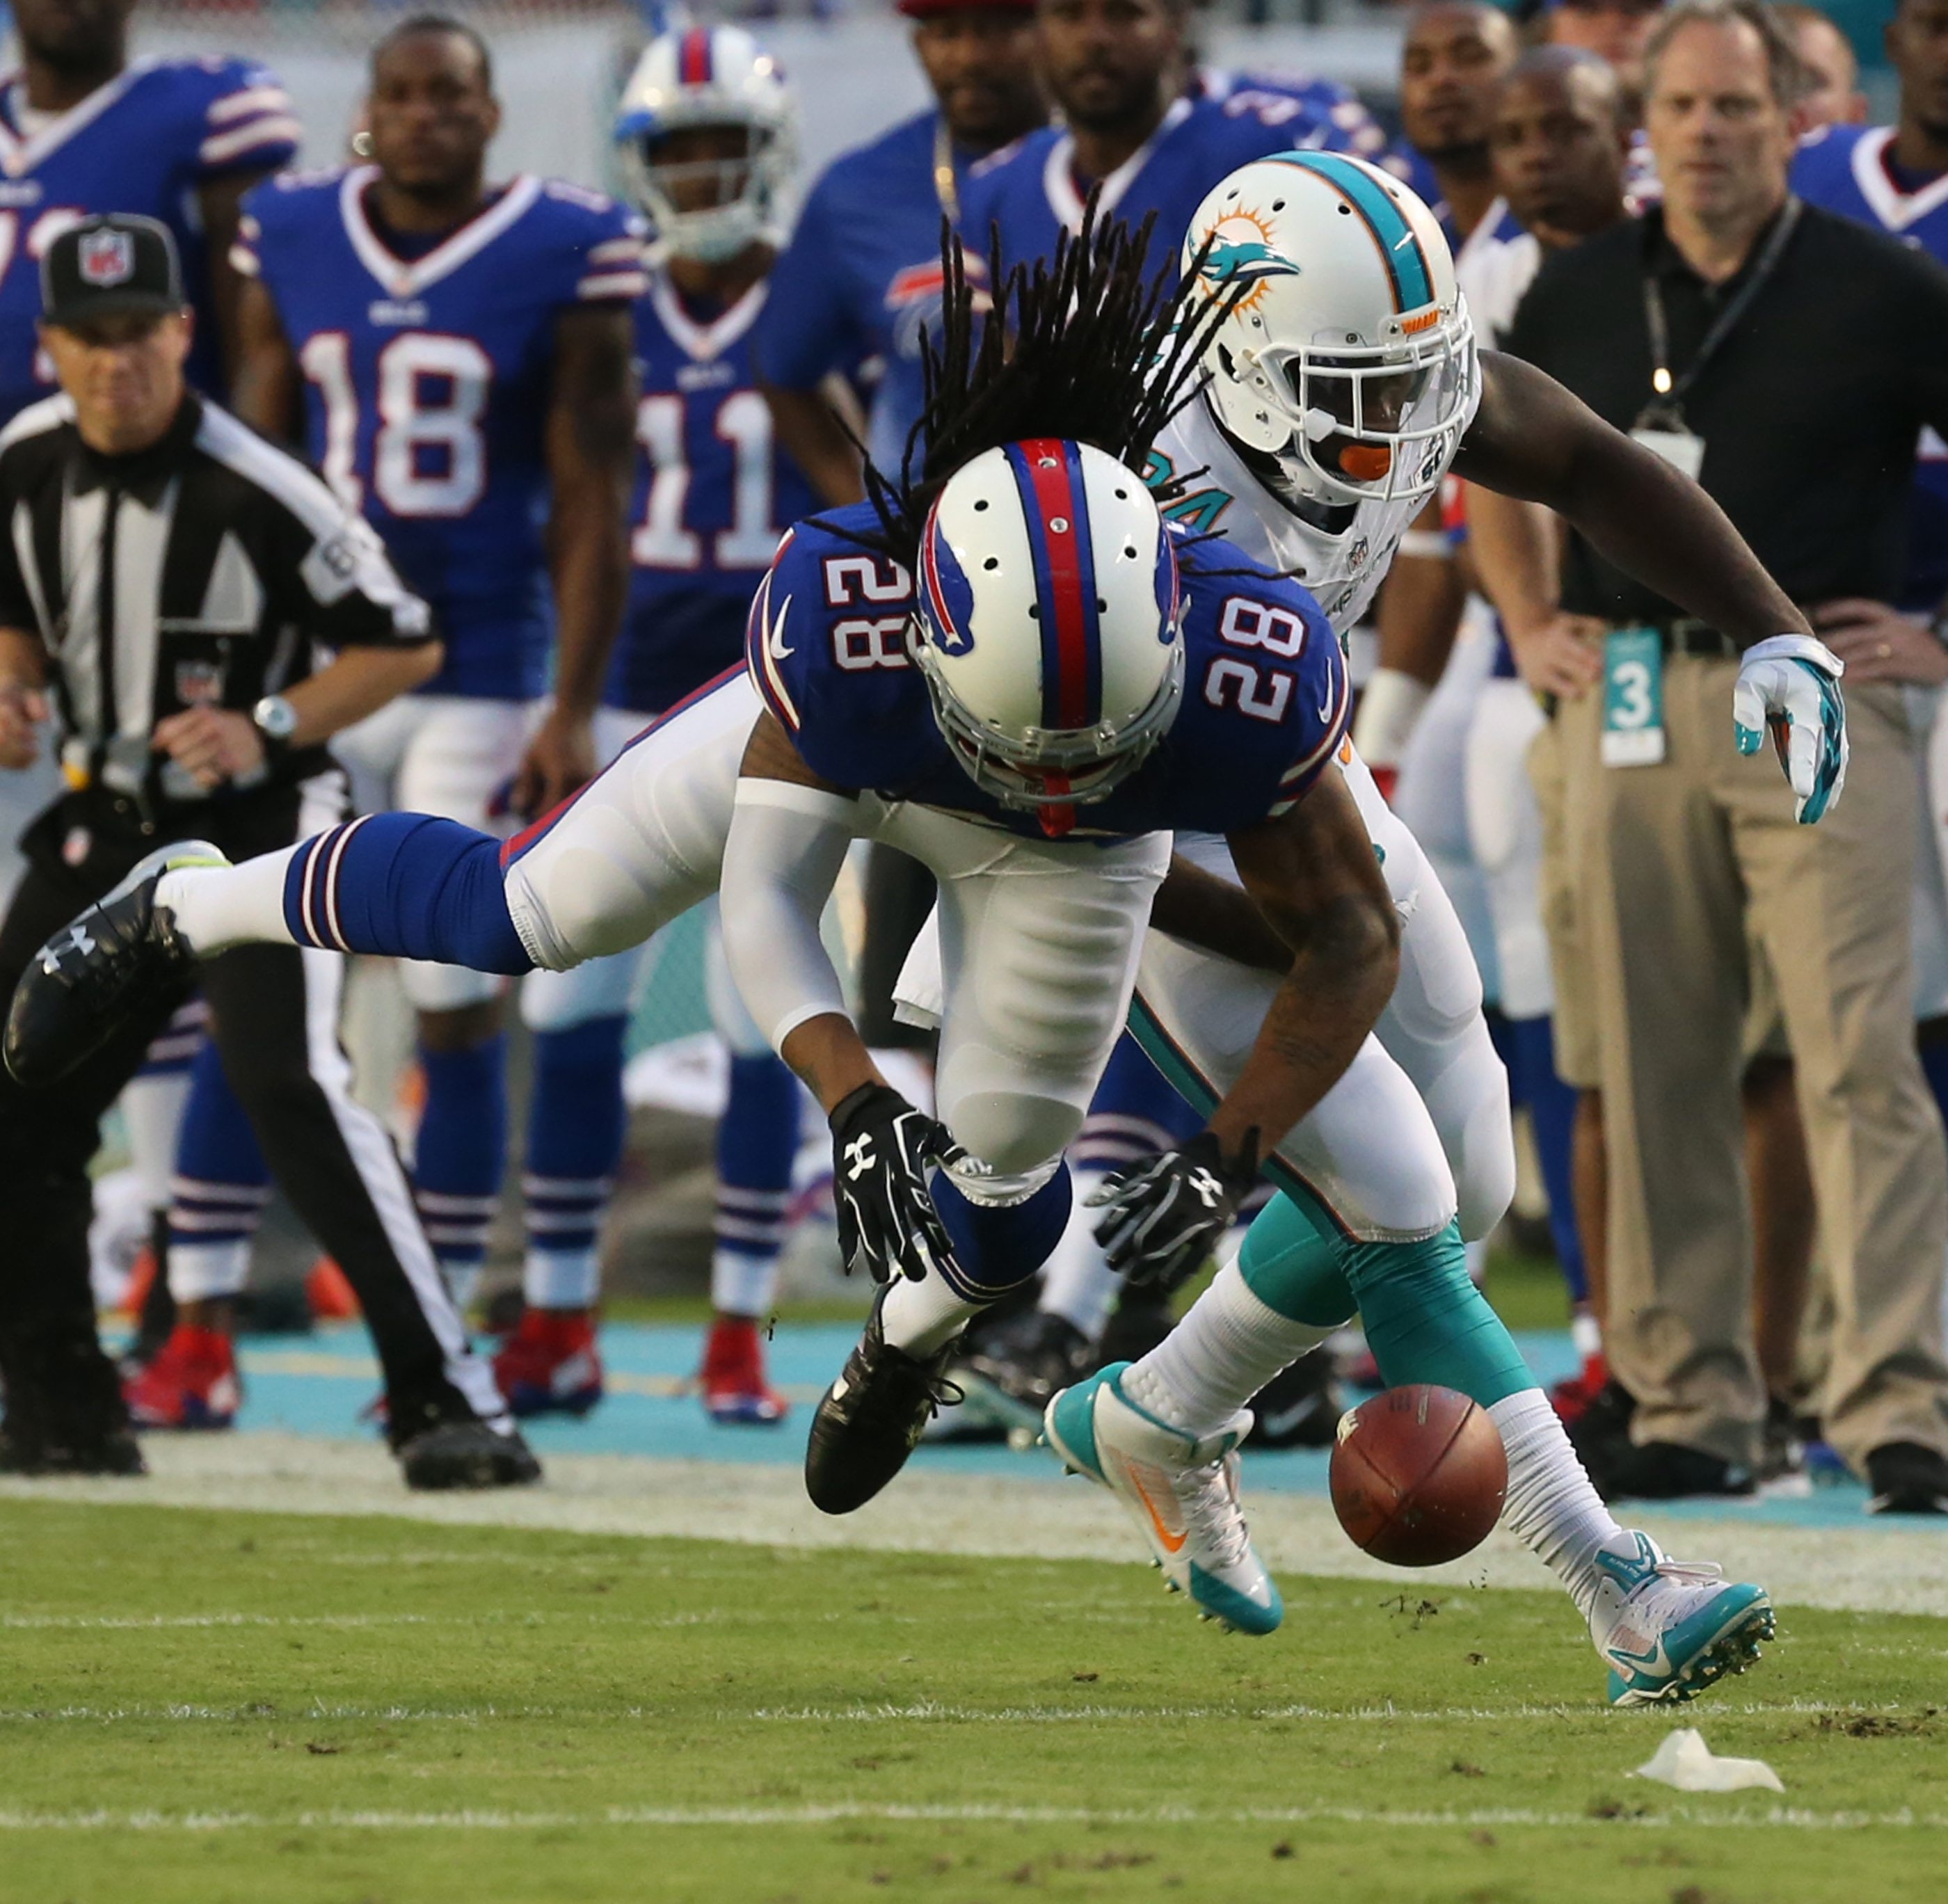 Bills cornerback Ronald Darby breaks up a Dolphins pass during the first quarter at Sun Life Stadium, where the fans were booing Miami at halftime.